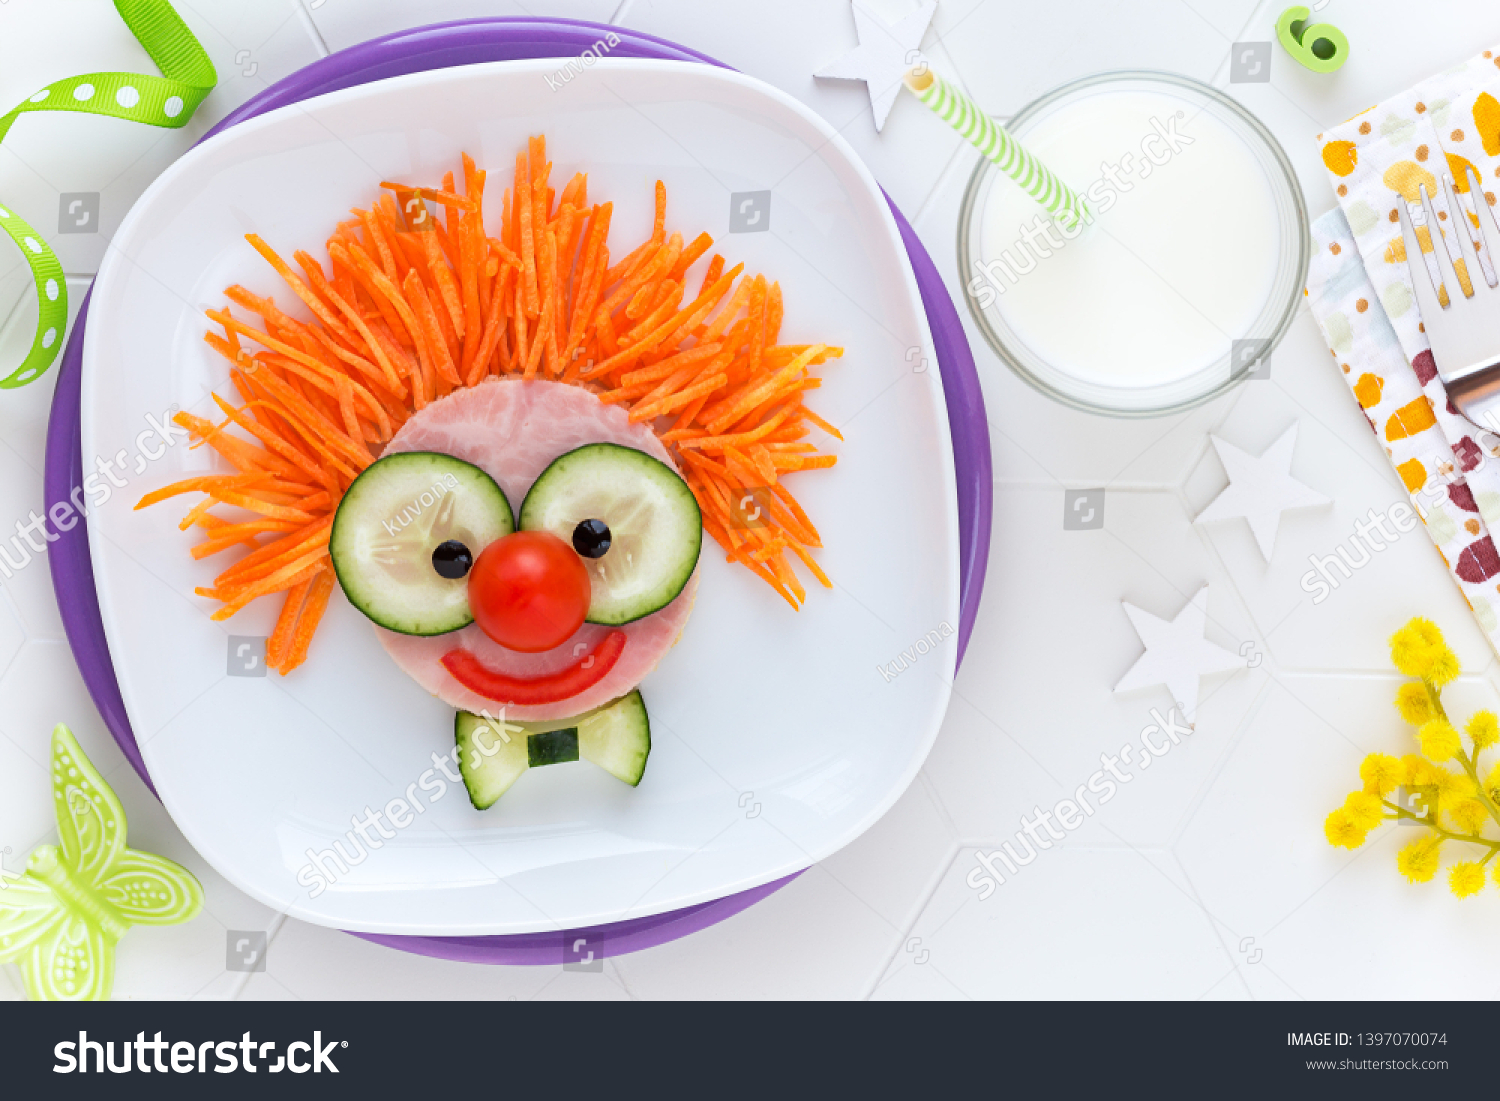 stock-photo-fun-food-for-kids-cute-smili